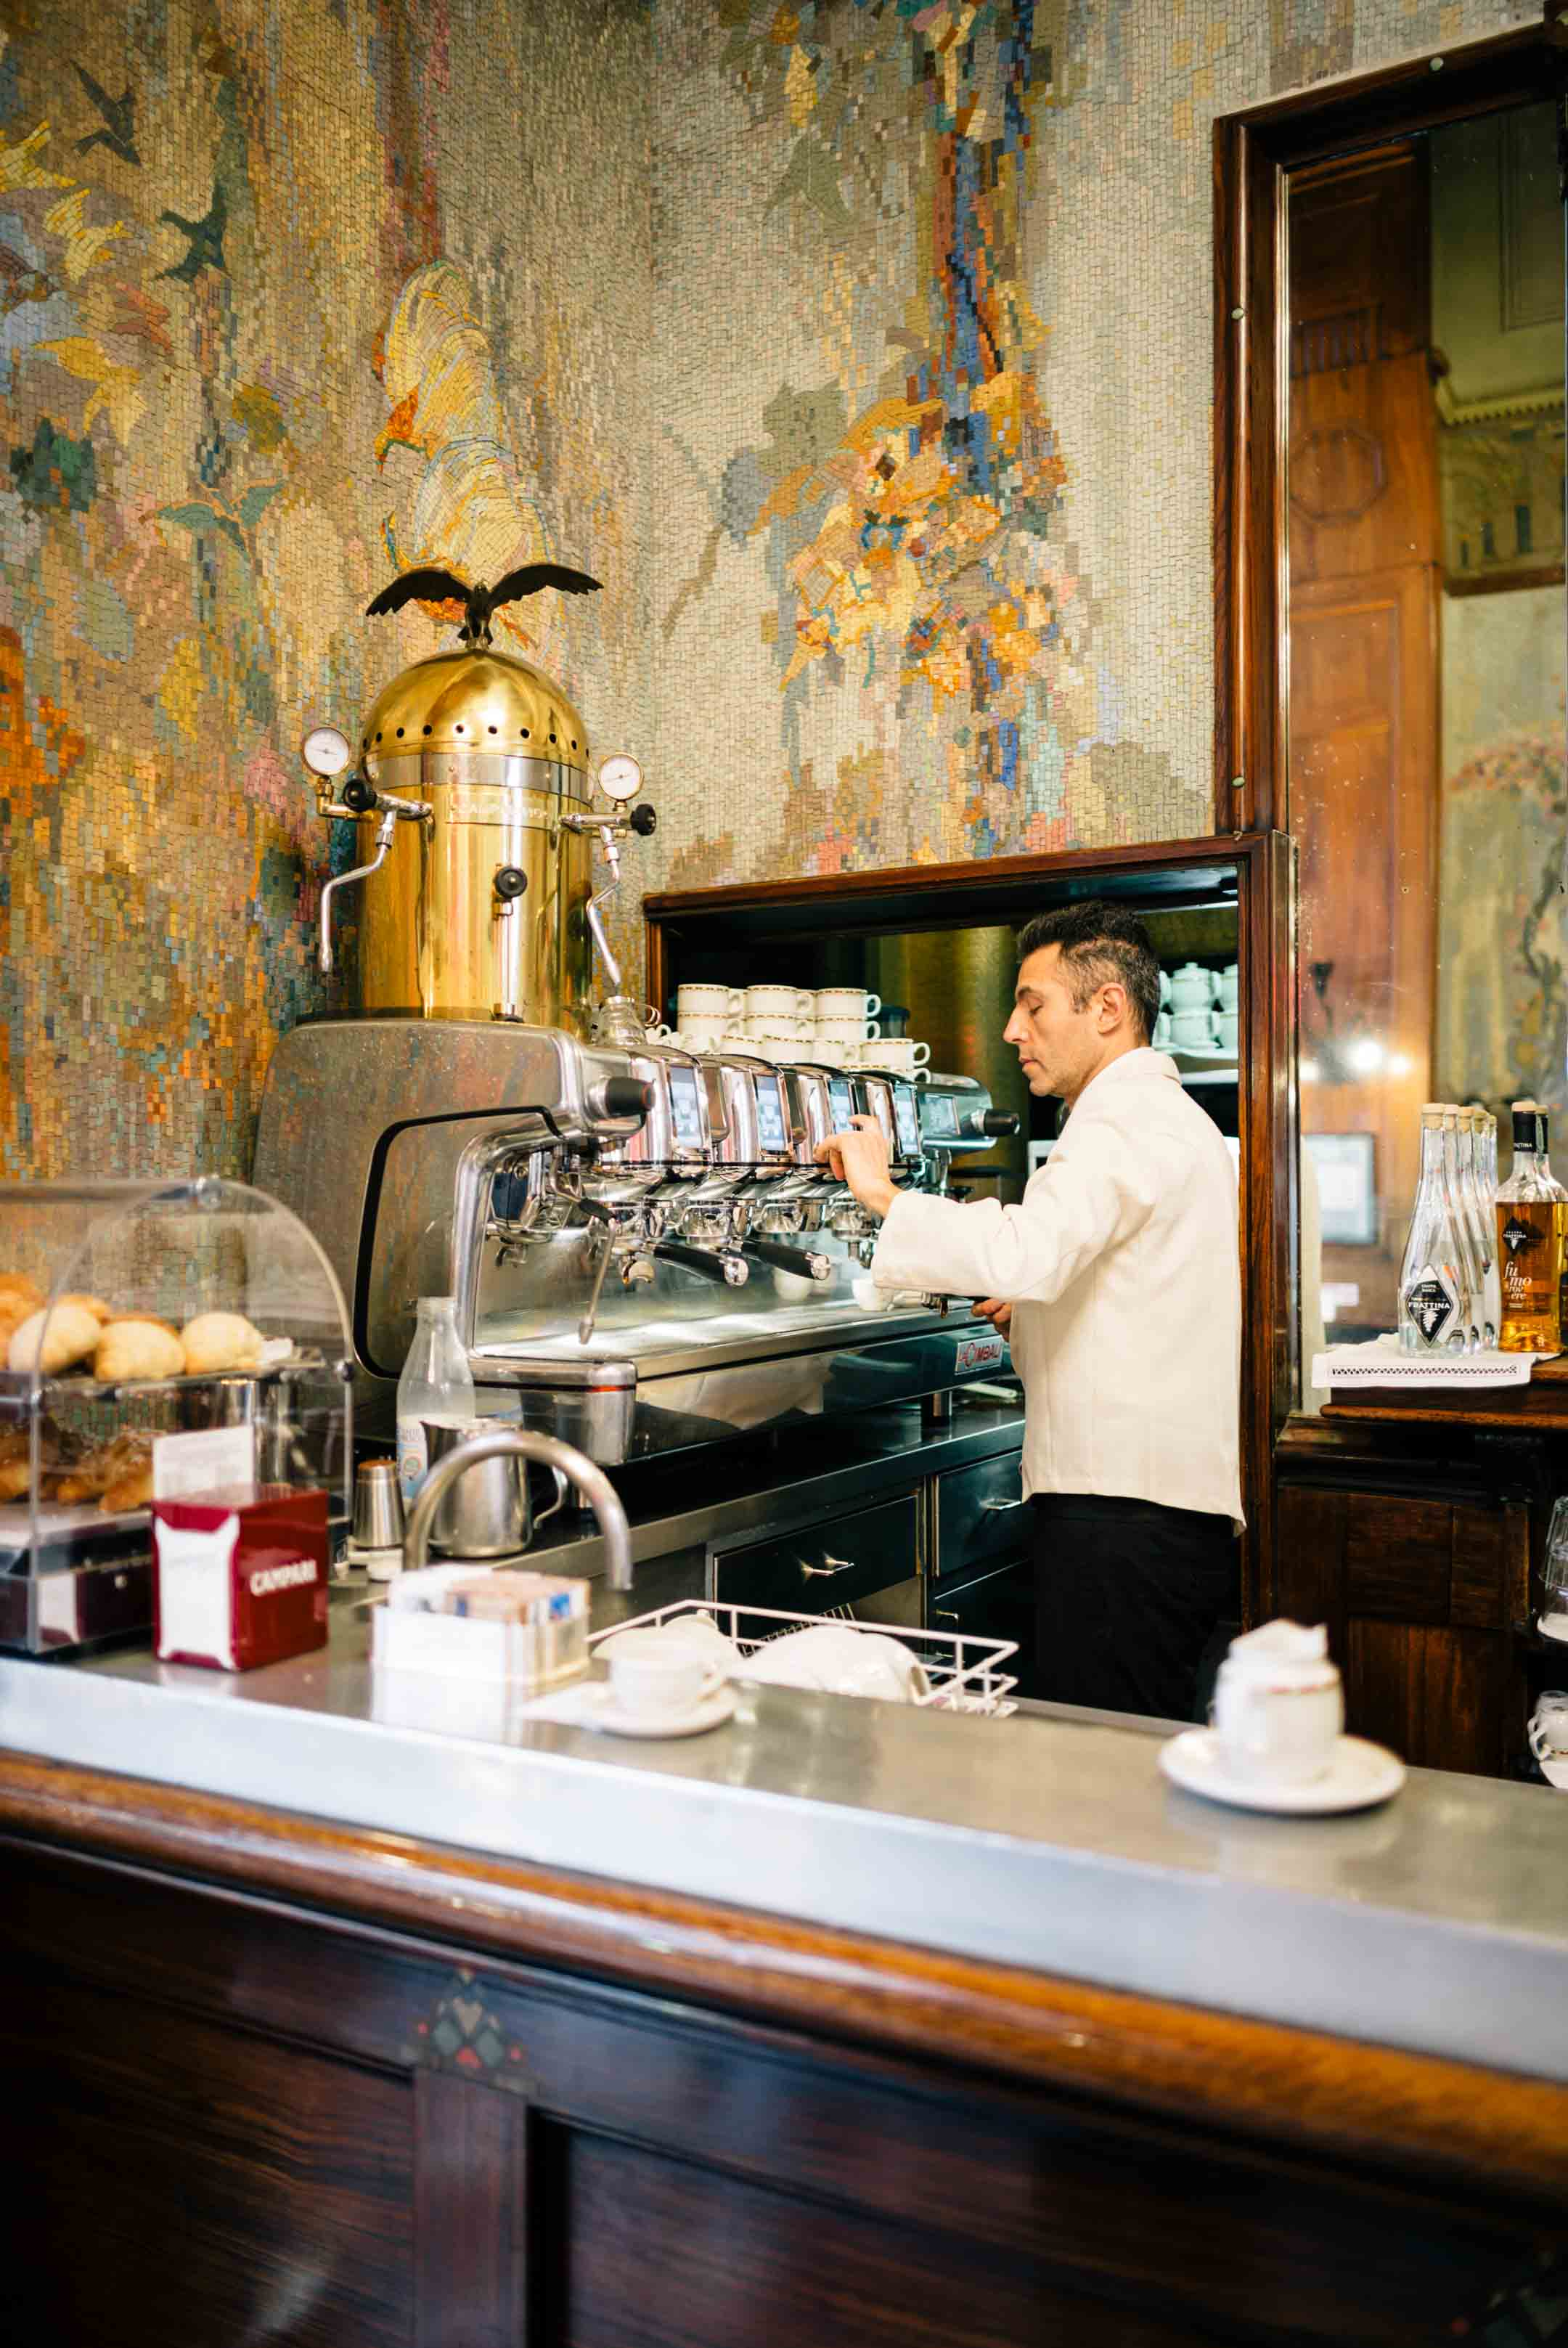 The Taste SF recommends getting a coffee in the morning at Camparino in Galleria in Milan - the original campari cocktail bar - before heading to the duomo.